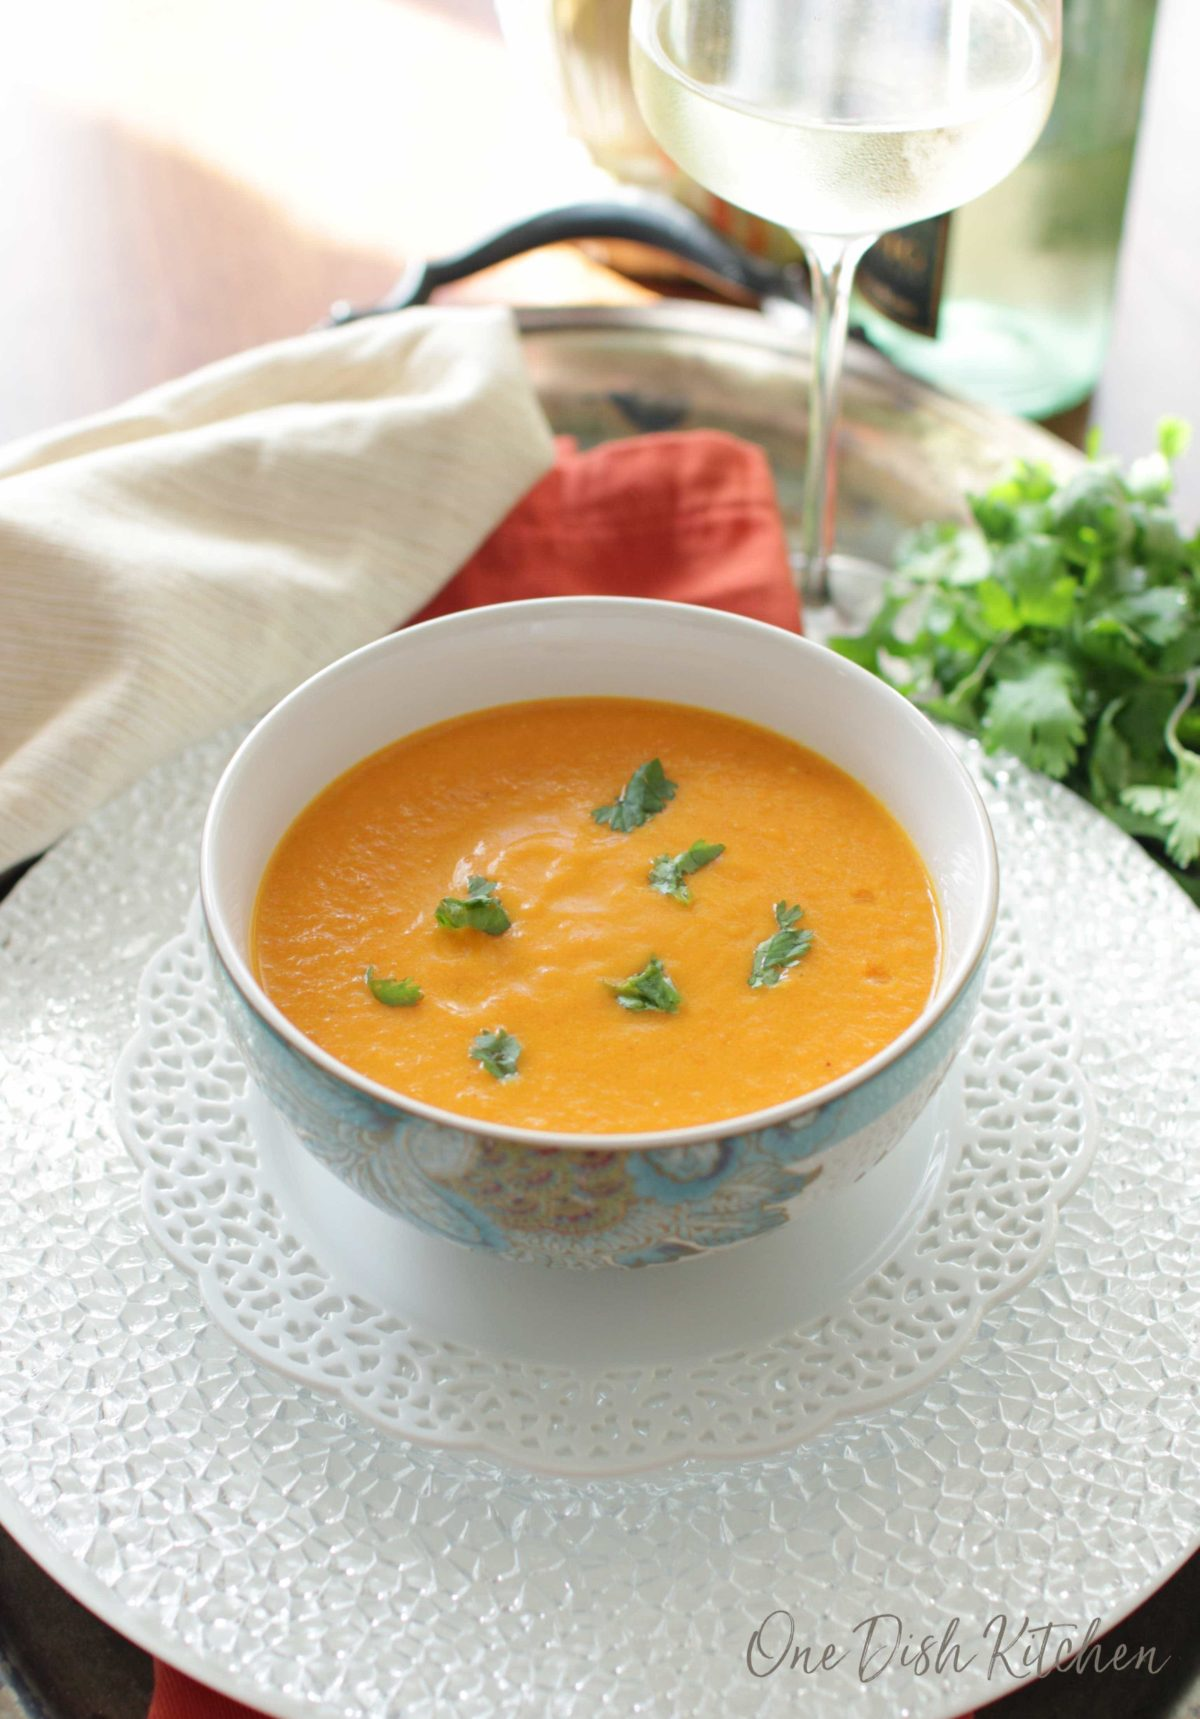 A bowl of carrot soup garnished with cilantro on a glass tray next to a glass of white wine and a bunch of cilantro